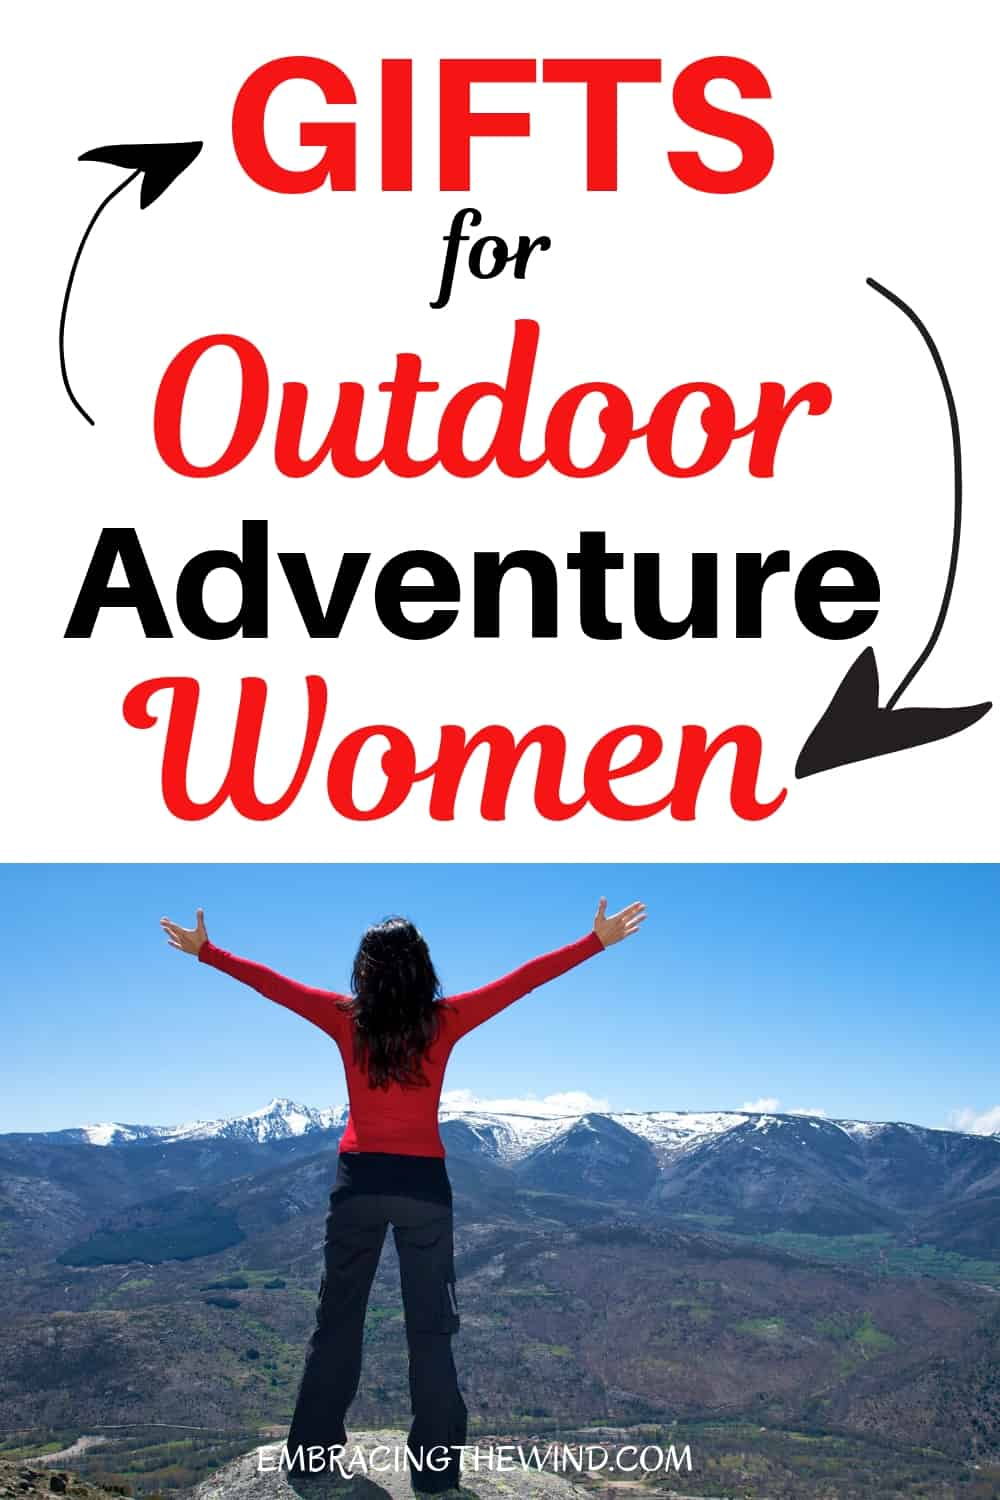 Woman on mountain top with gifts for outdoor adventure women title